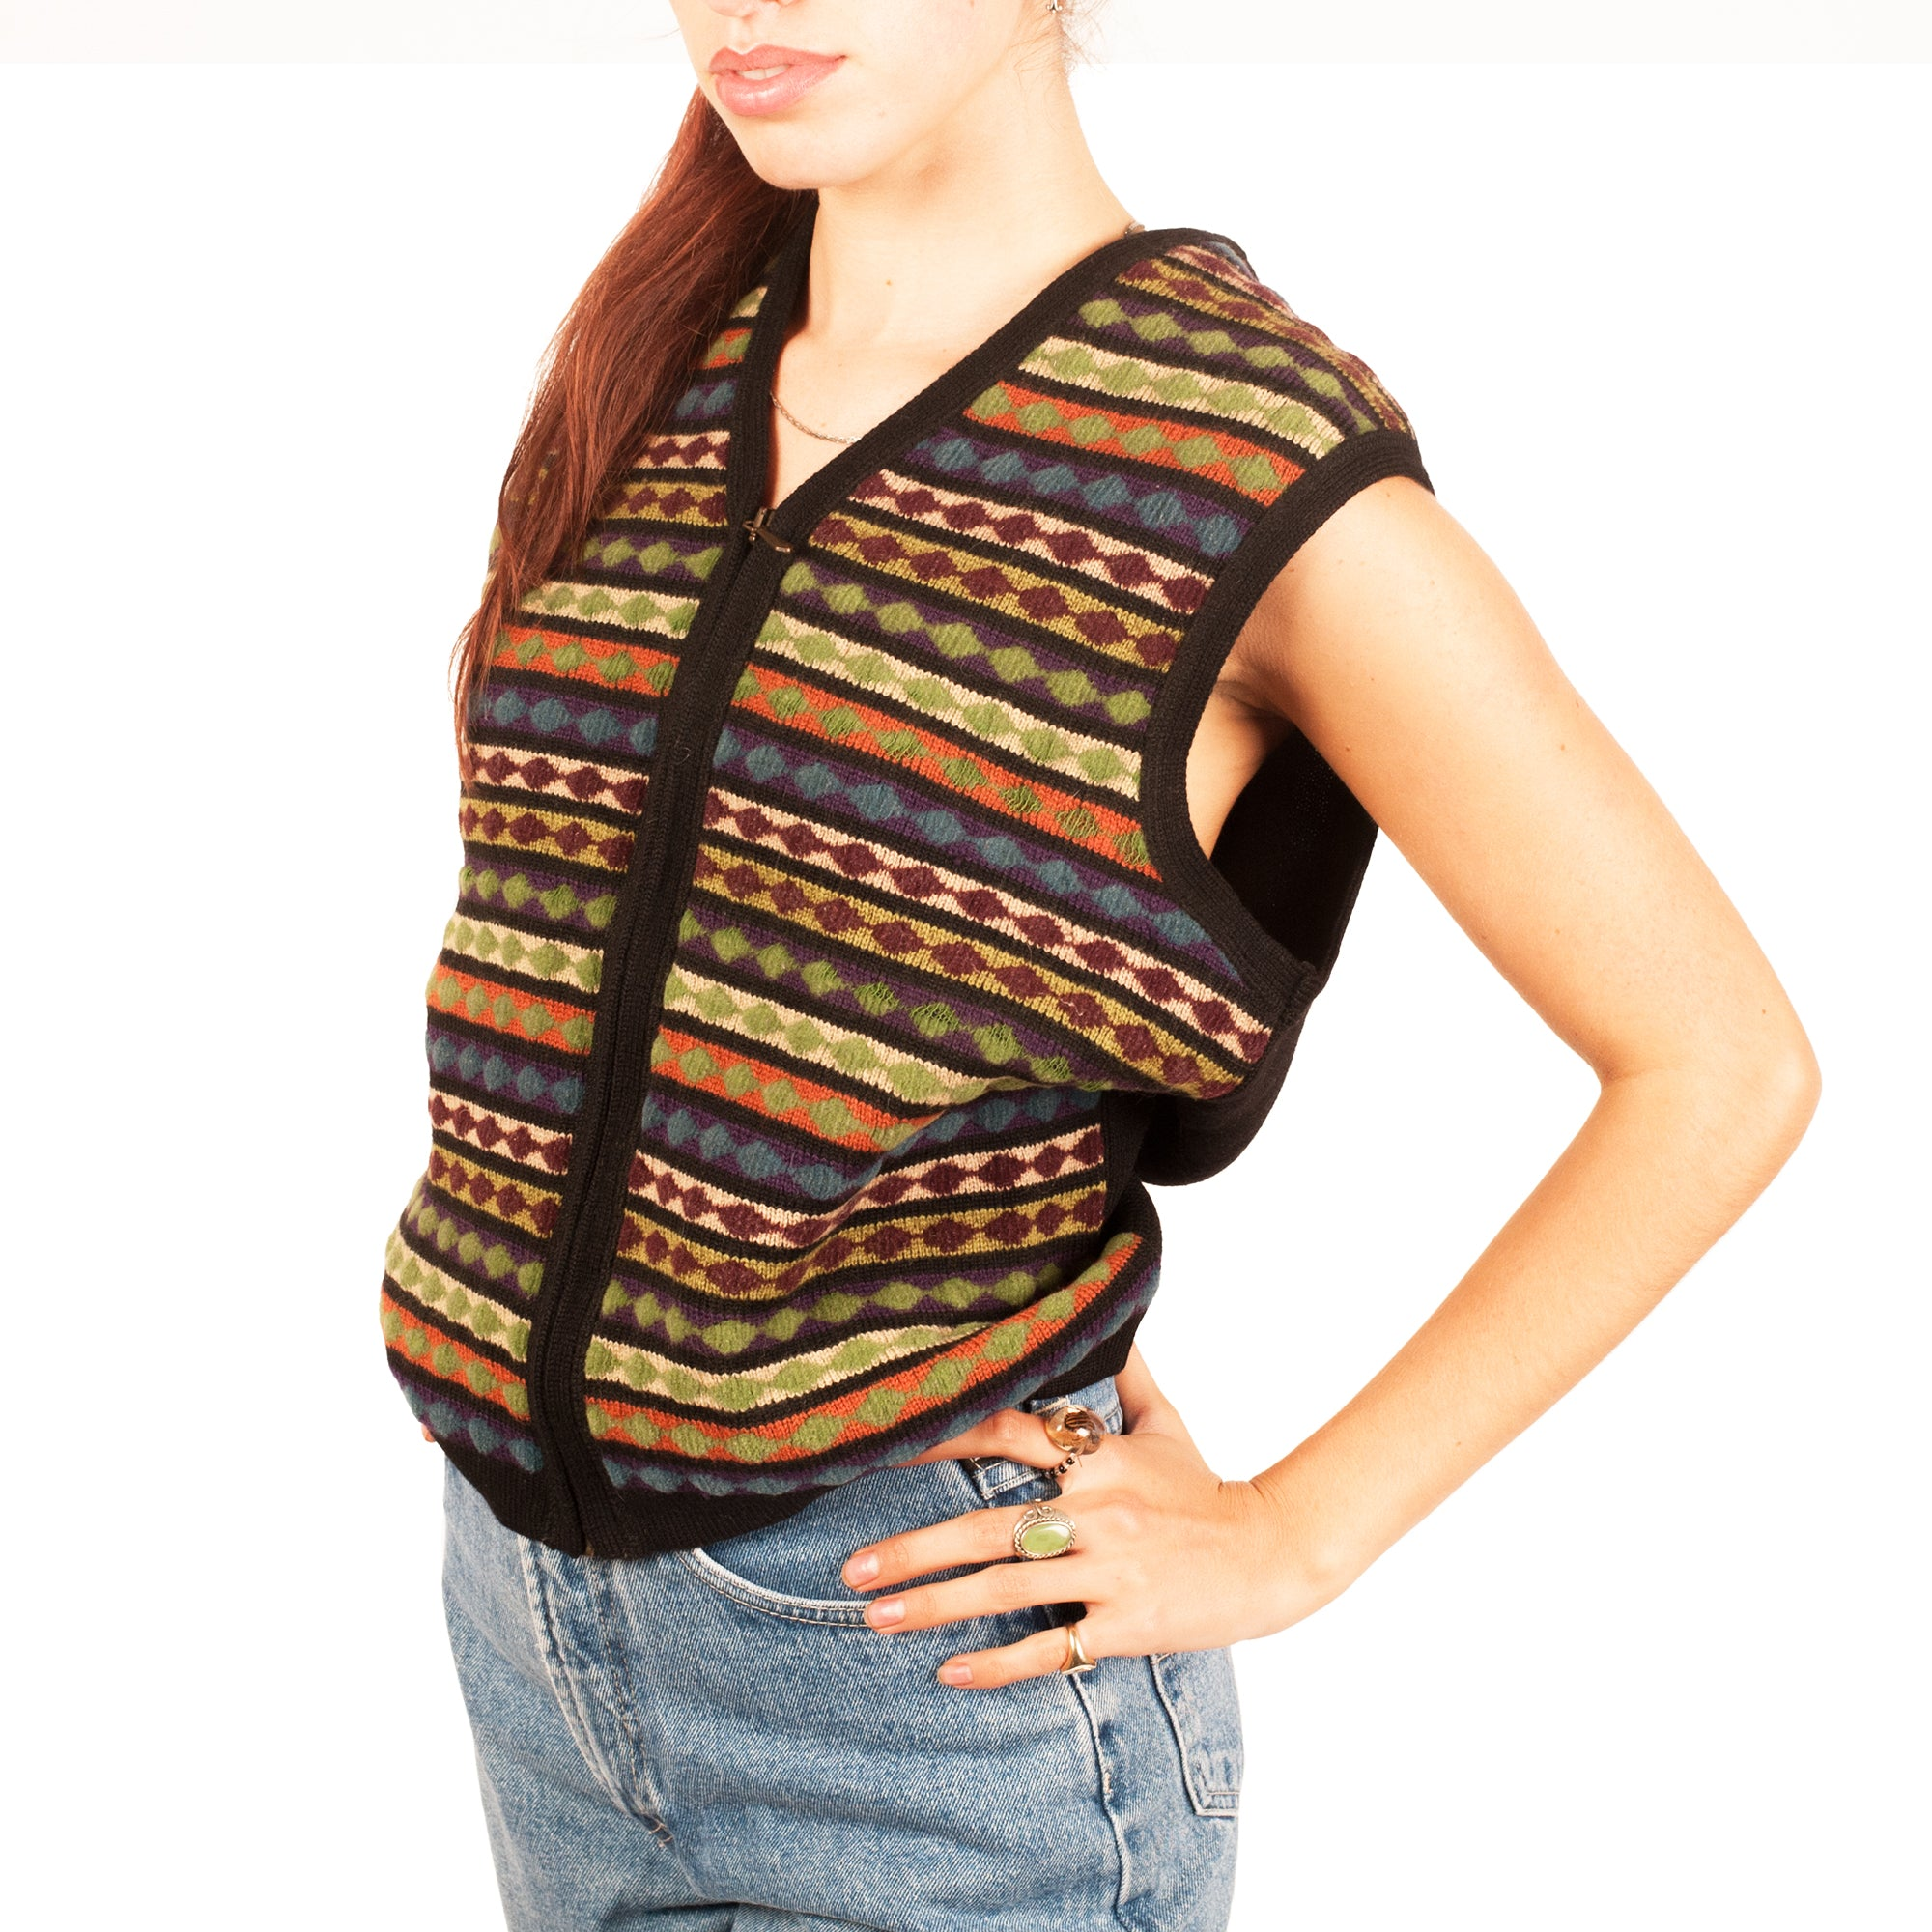 Jean Paul Gaultier Knit Vest (Multi) UK 8-12